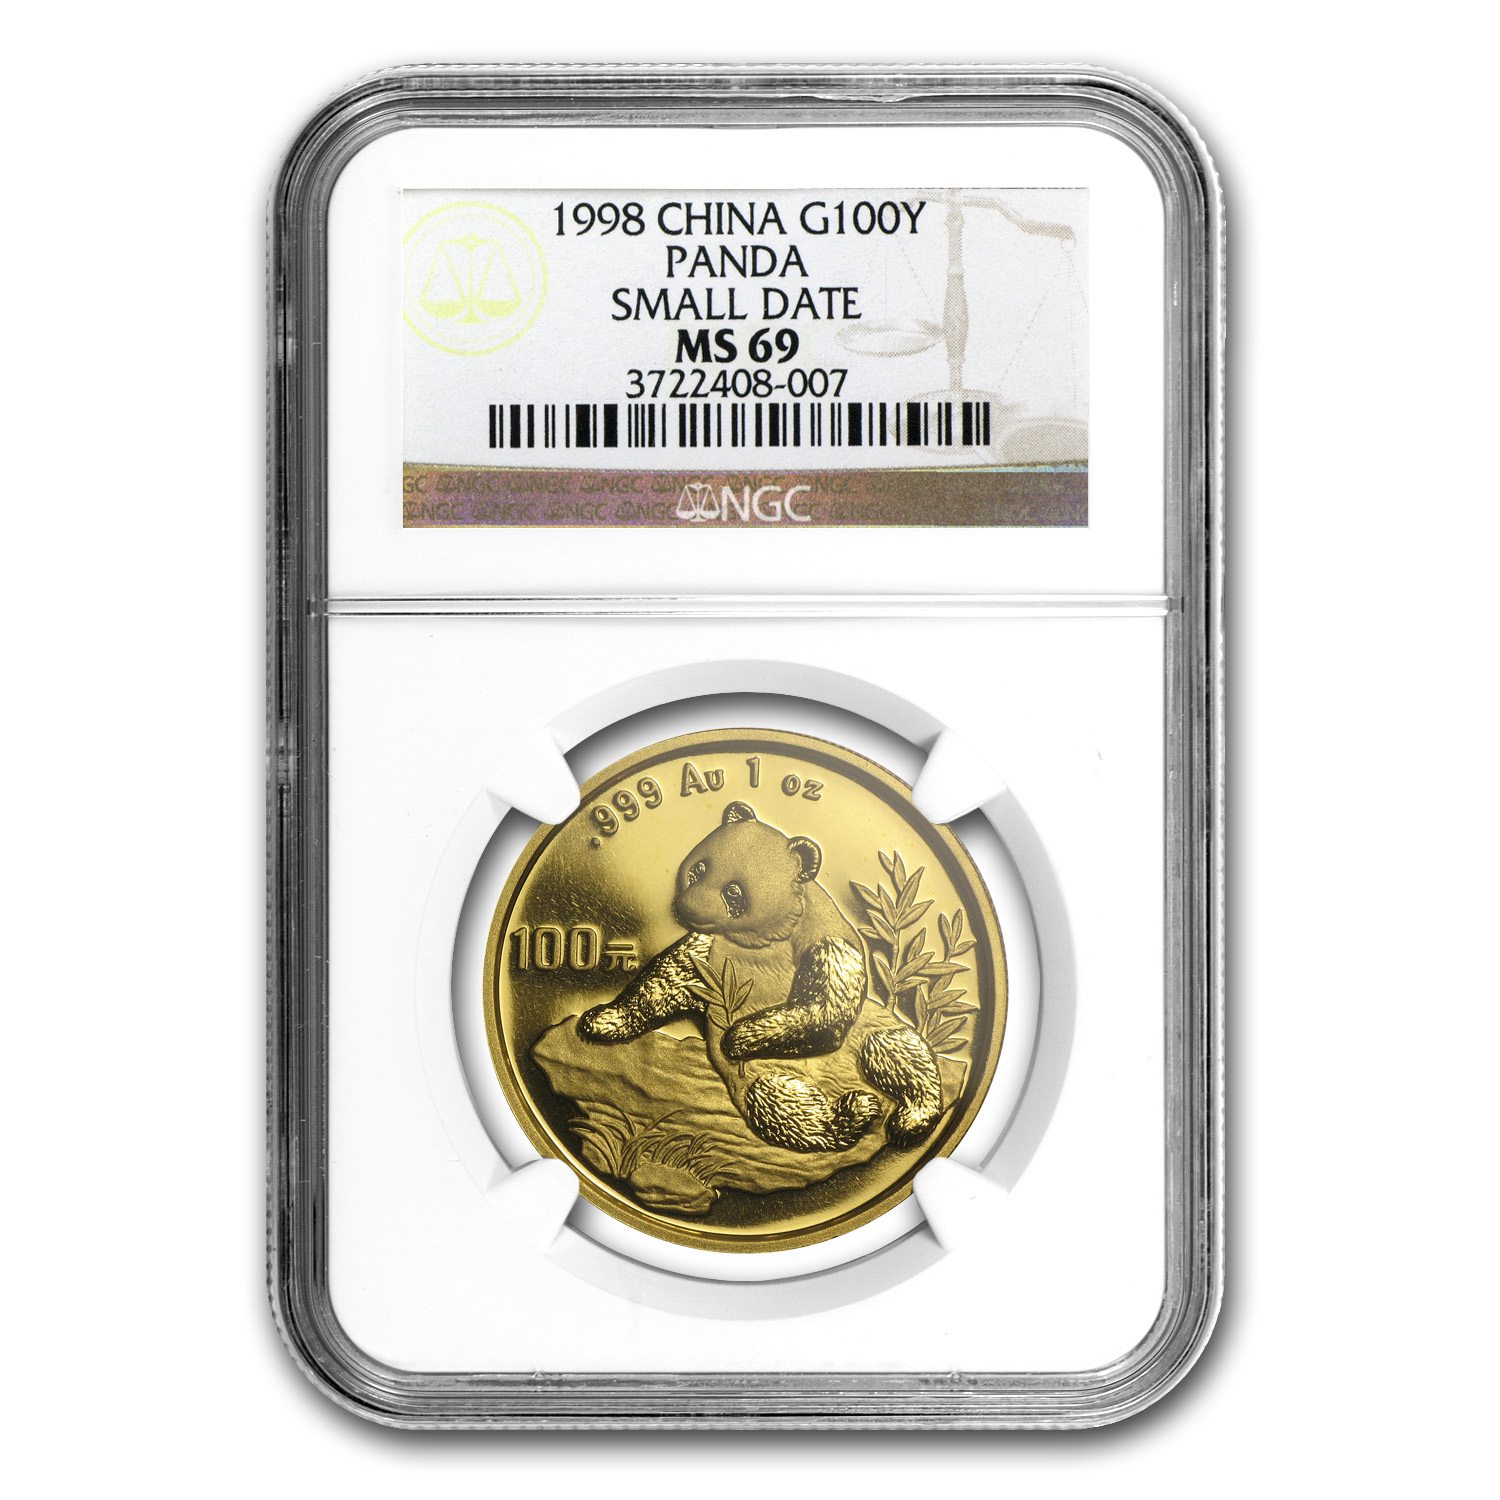 1998 China 1 oz Gold Panda Small Date MS-69 NGC